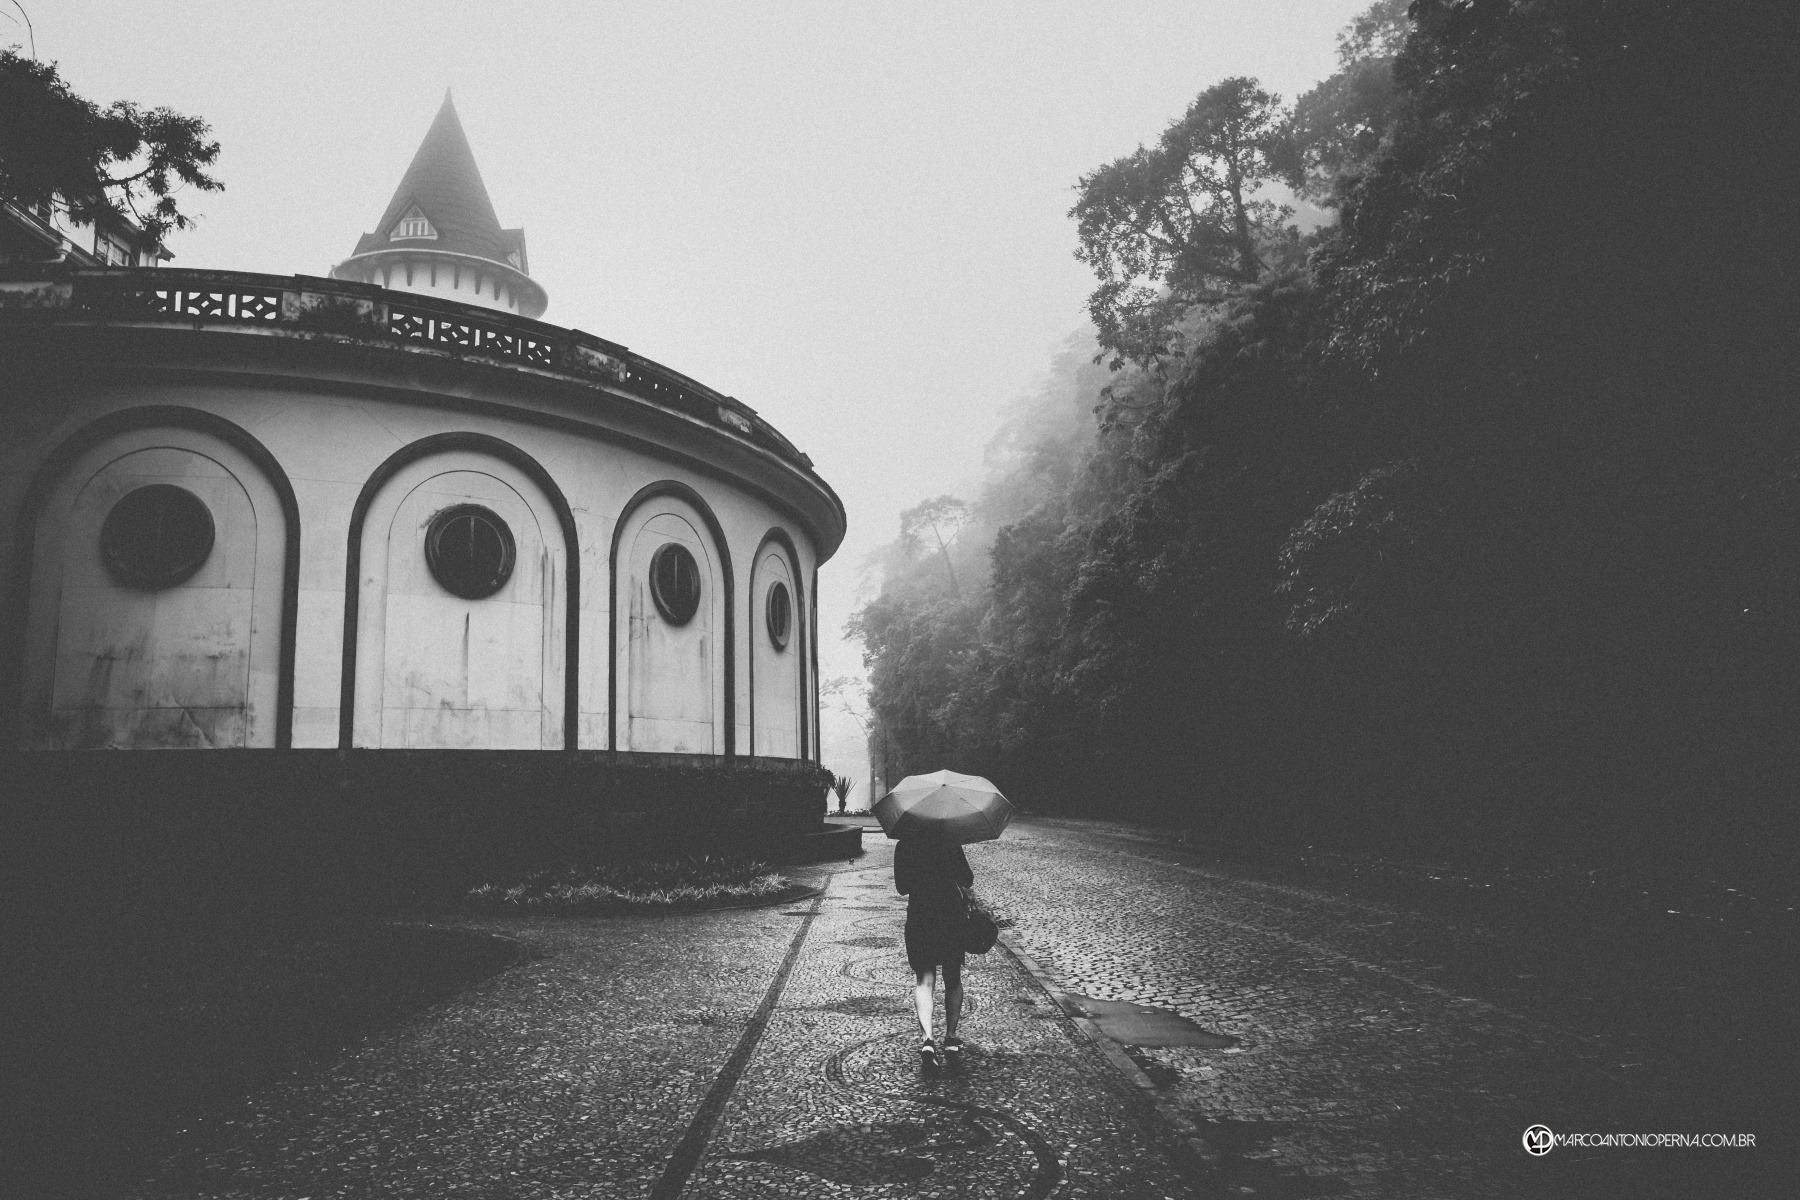 Rainy day in Petrópolis